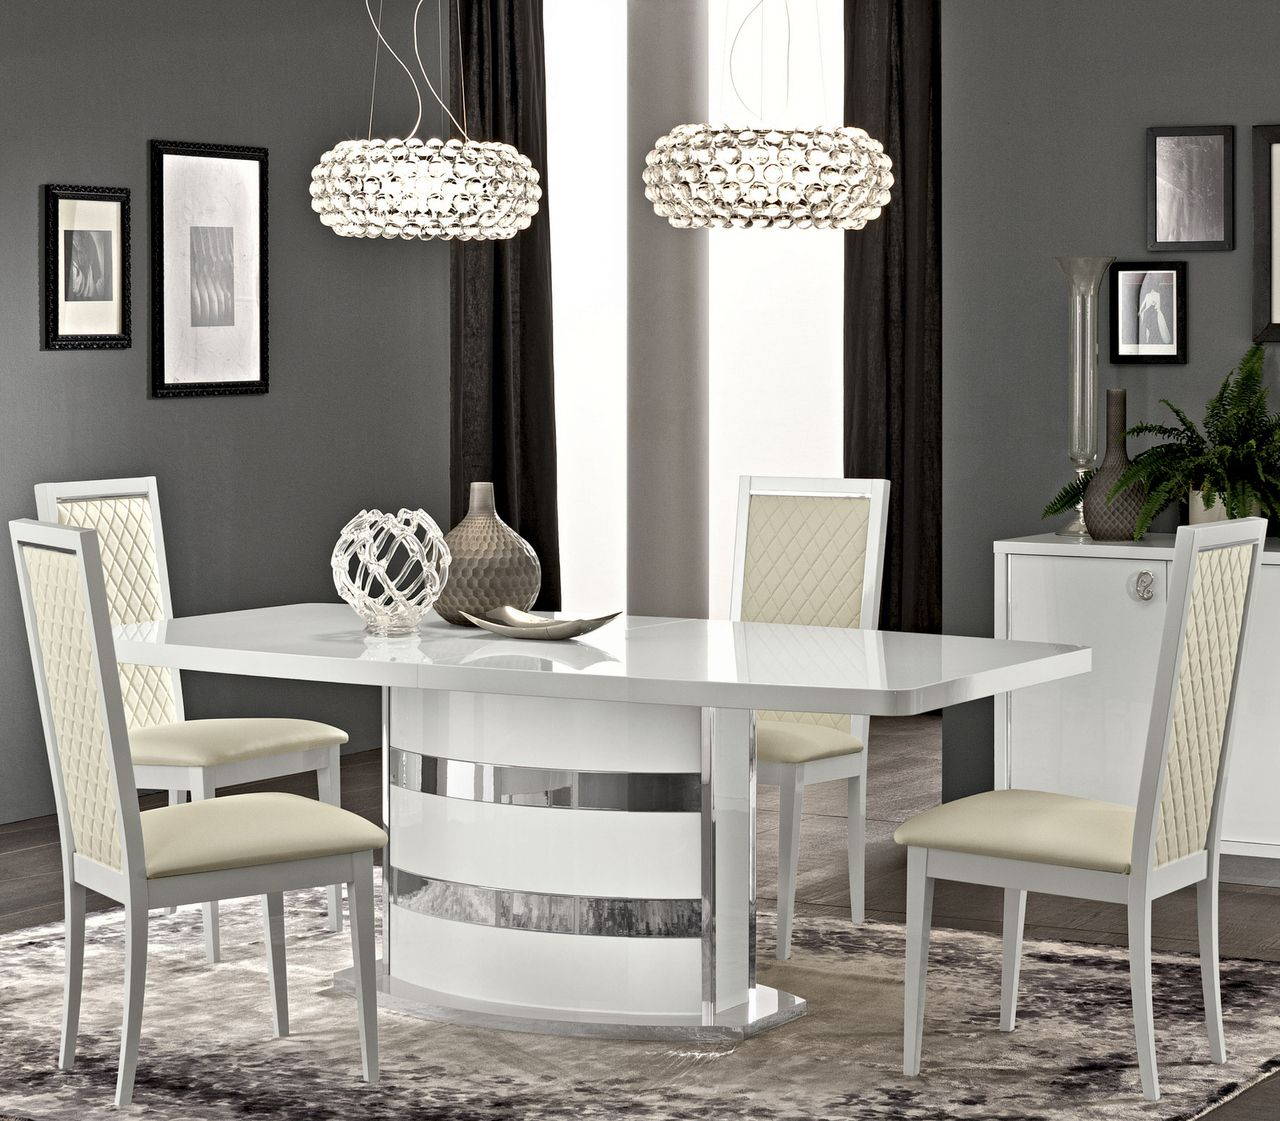 Little Home Store  Roma White High Gloss Extendable Dining Table Beauteous White Gloss Dining Room Table Design Decoration